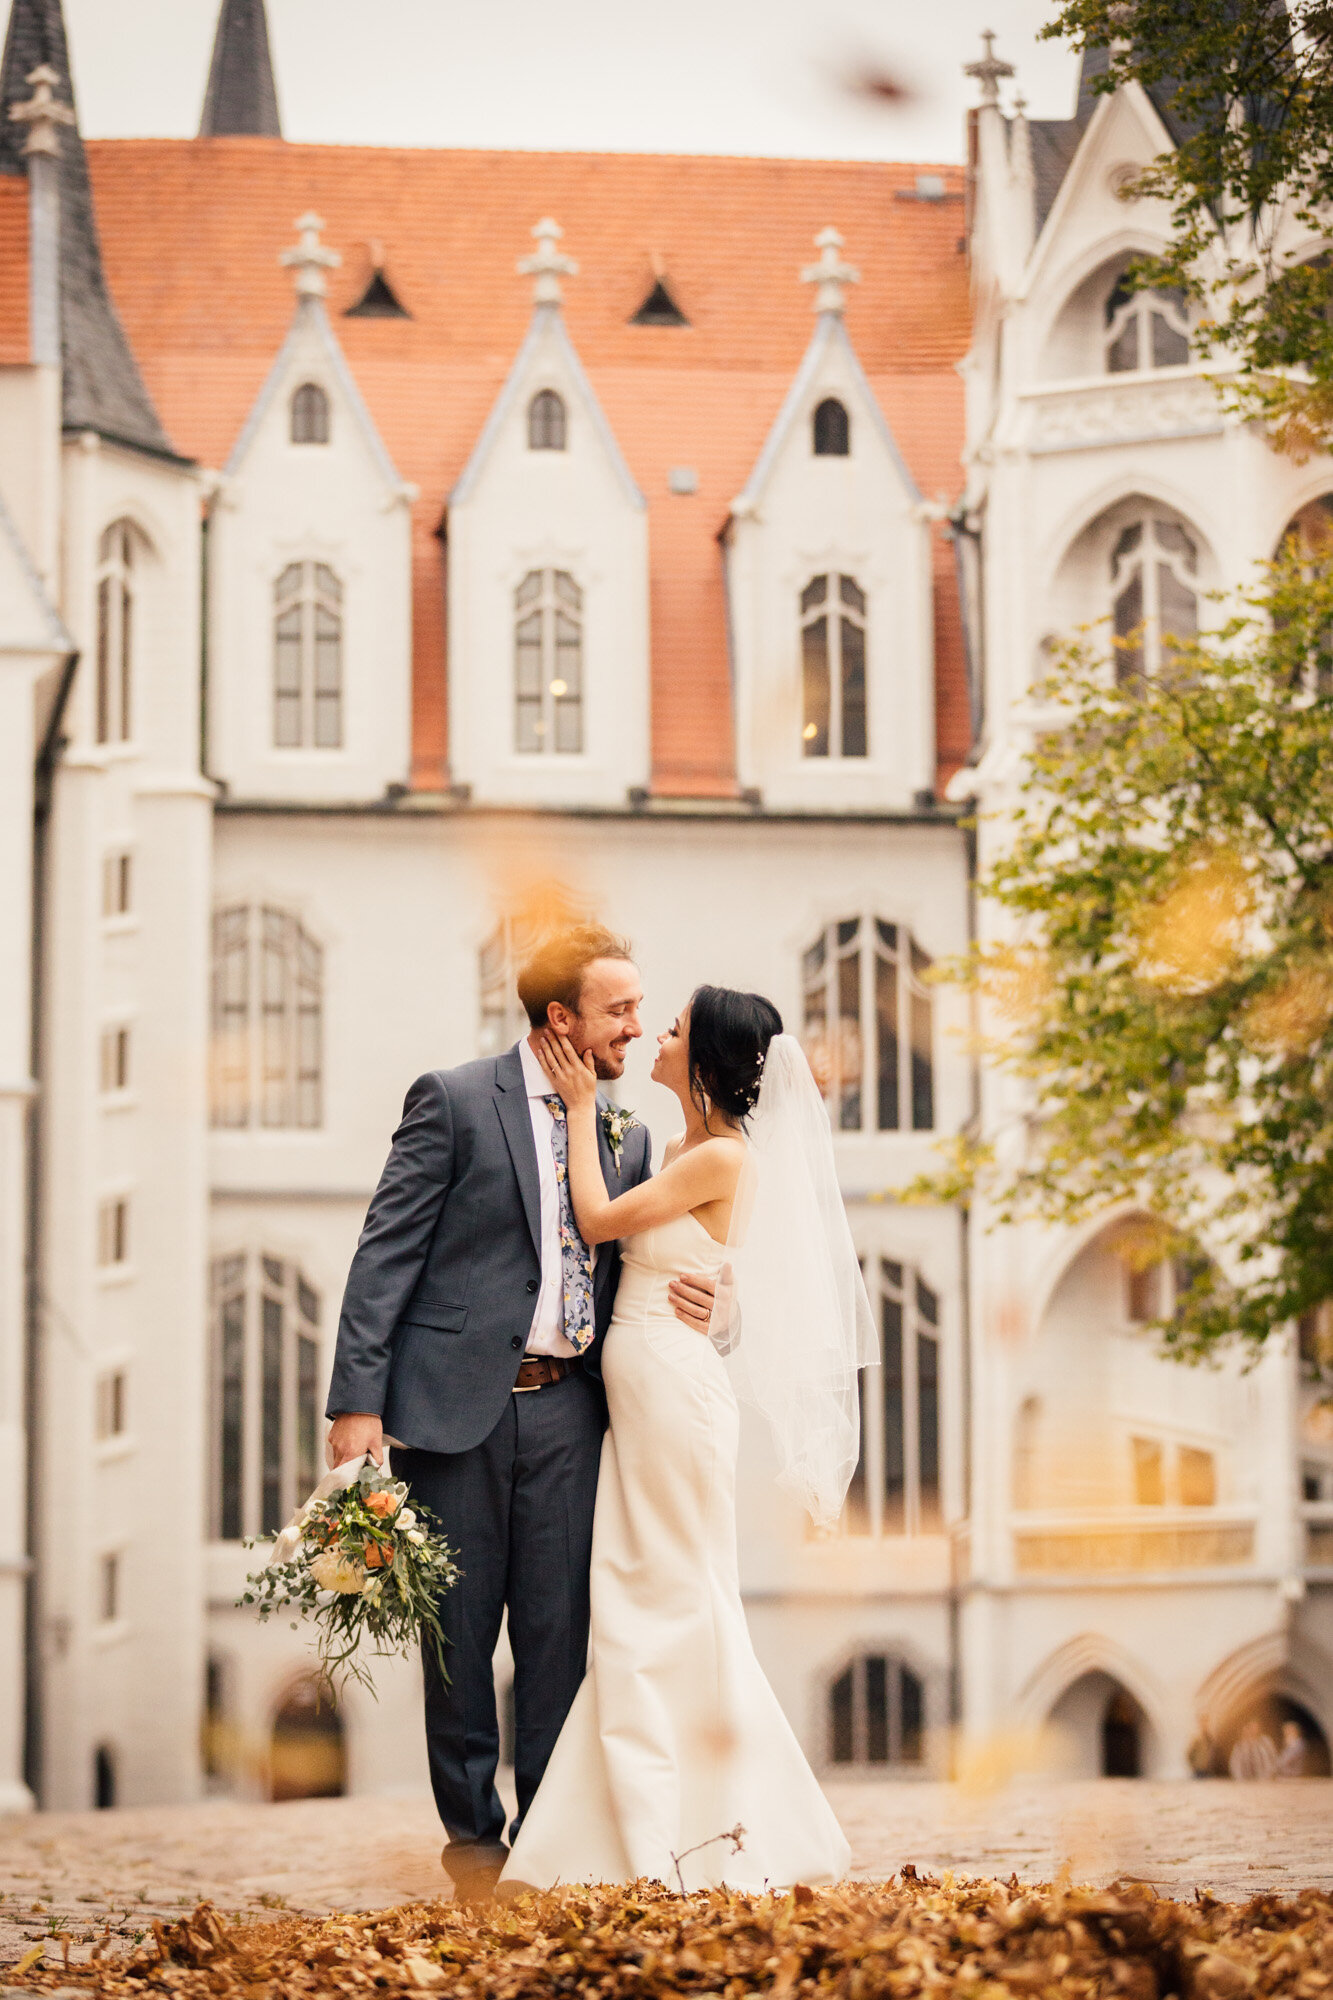 2019-10-11 Mike and Annie - Meissen, Germany - Jack Robert Photography (444 of 1010).jpg